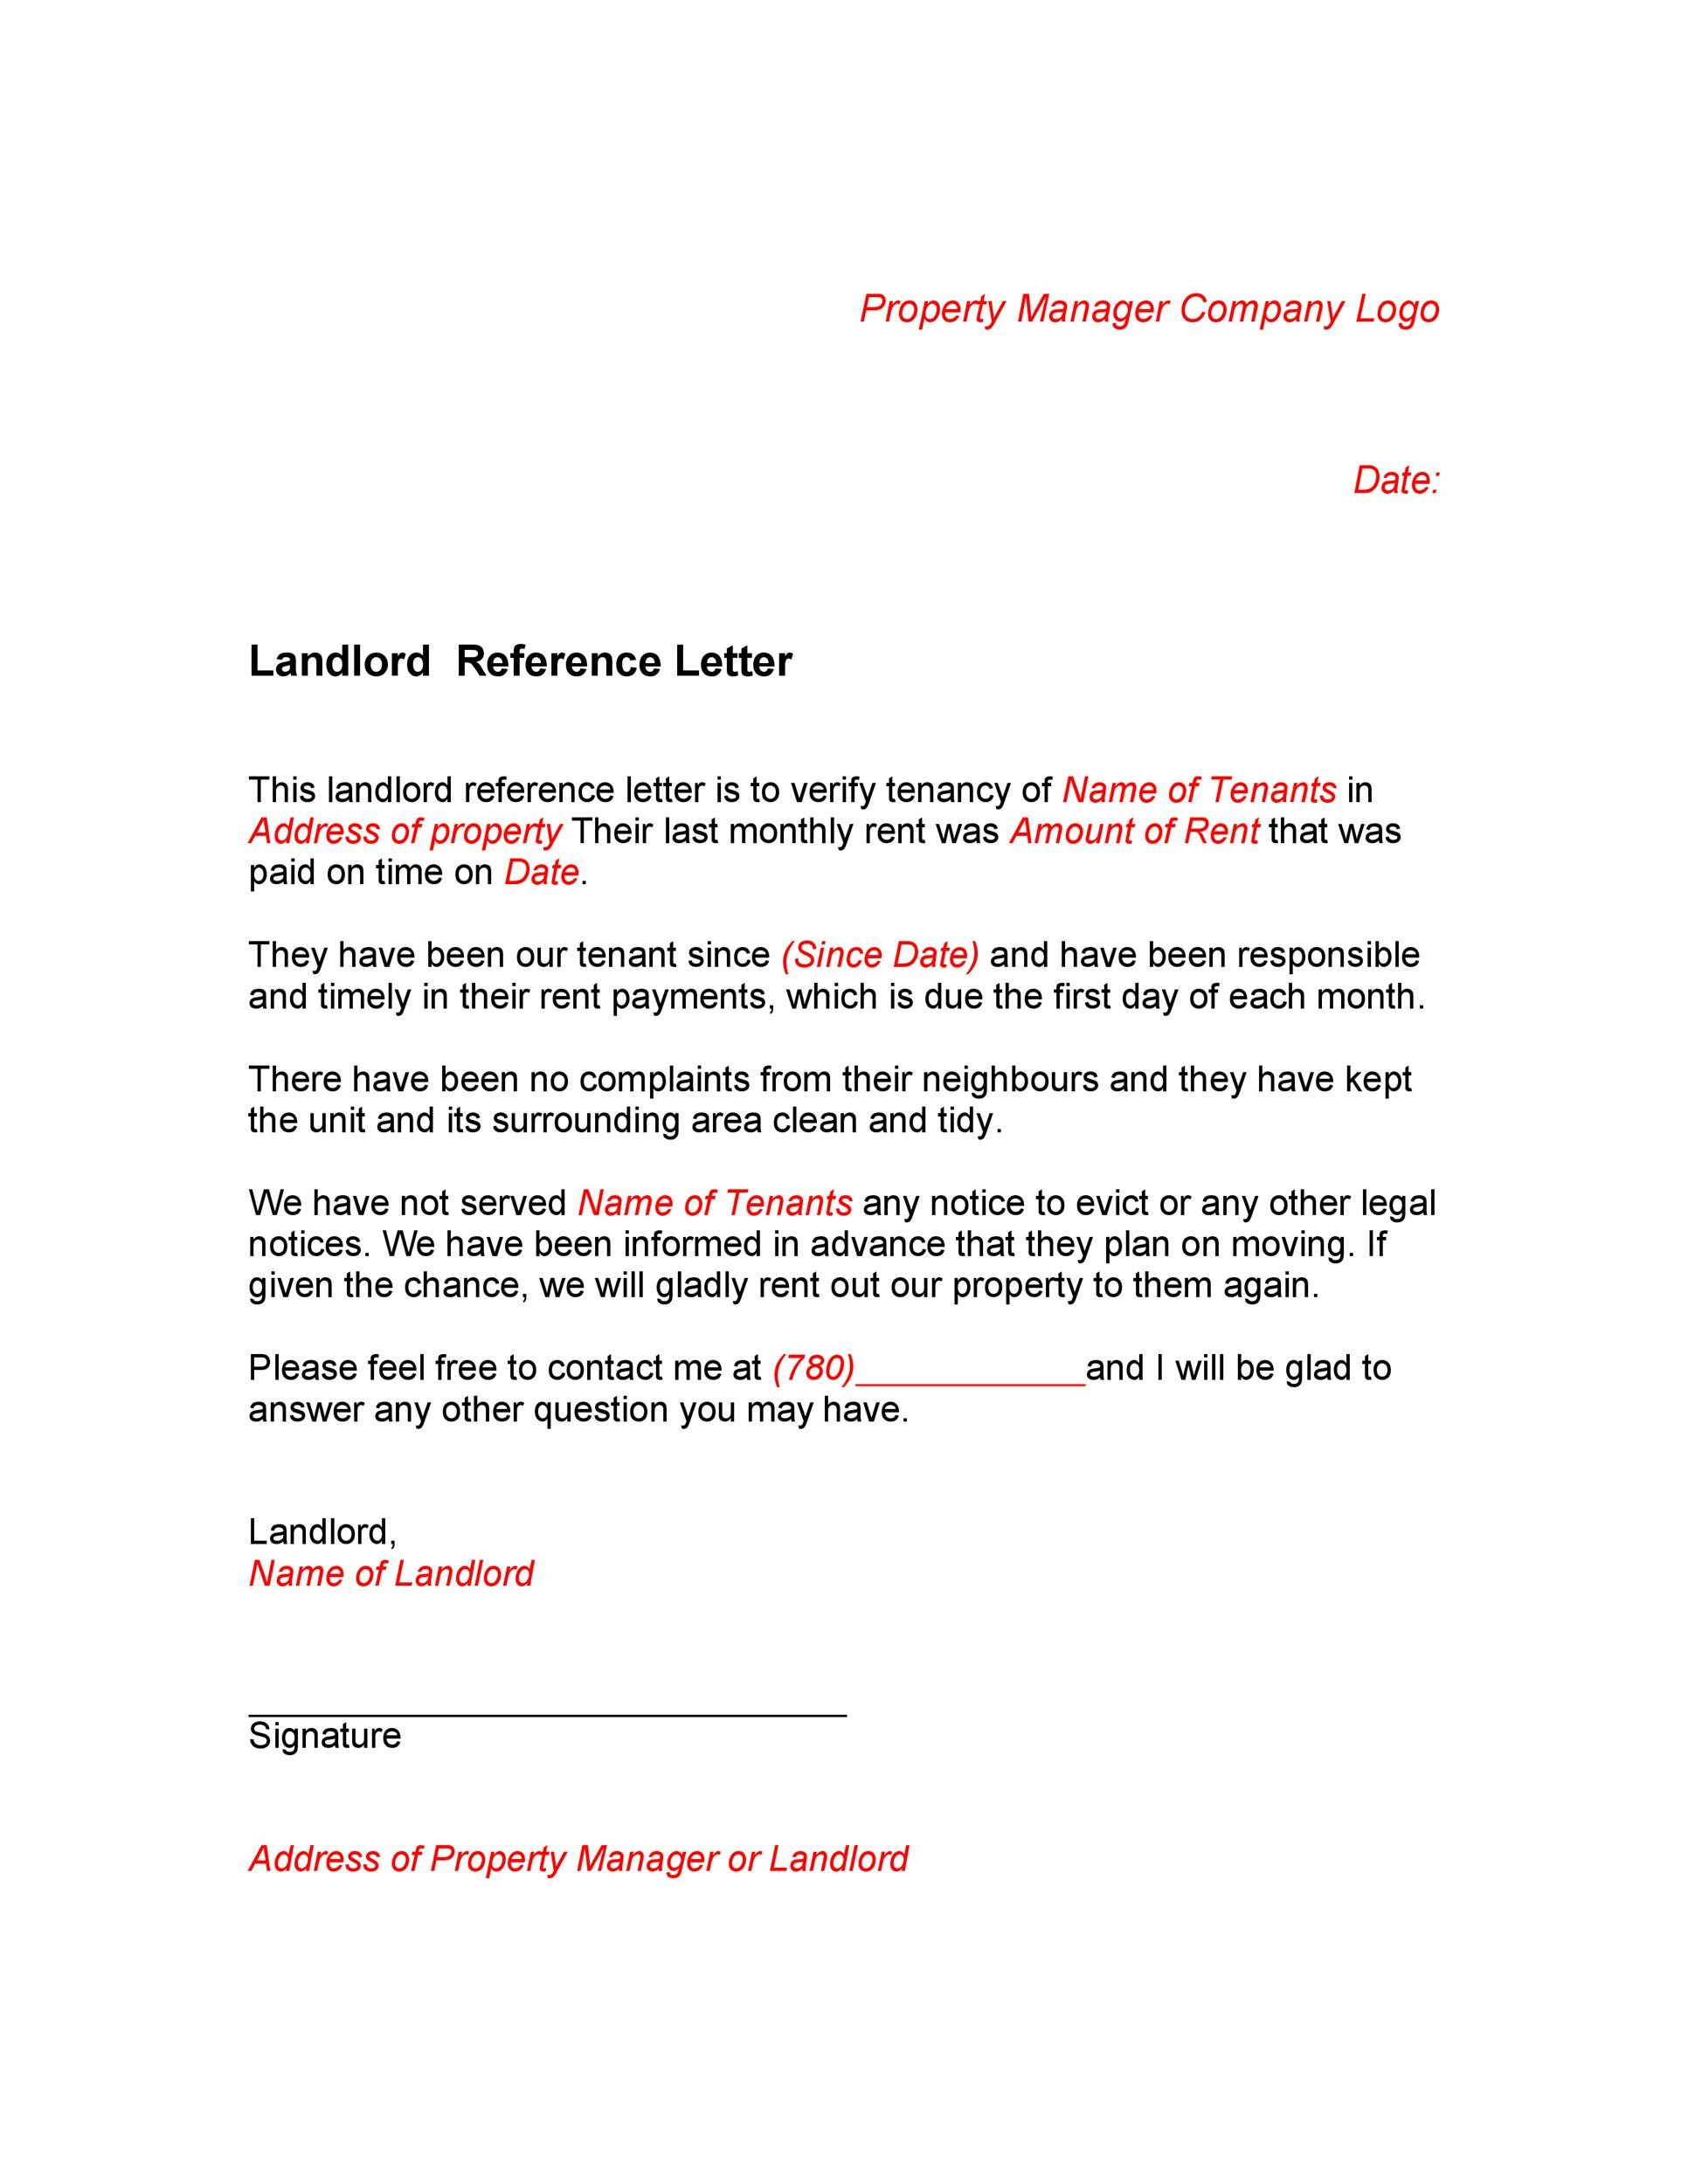 40  landlord reference letters  u0026 form samples  u1405 templatelab